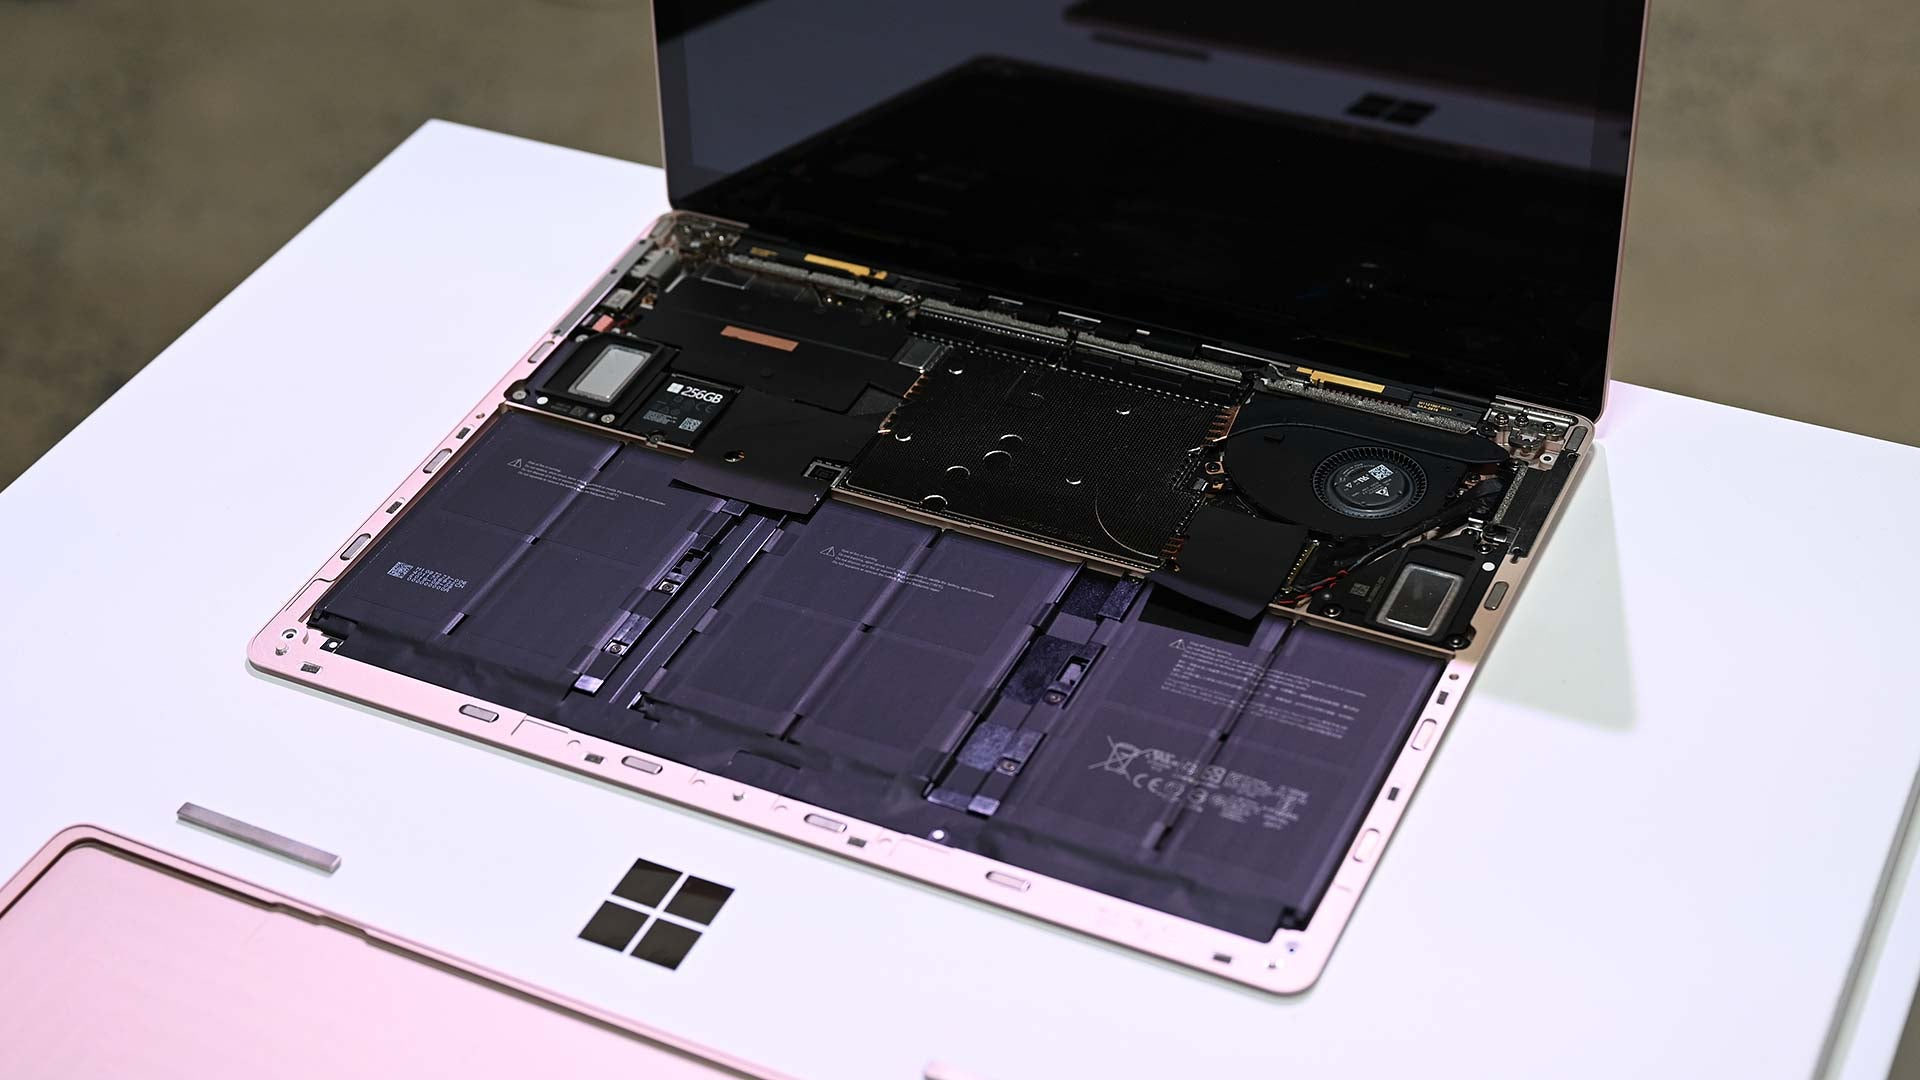 Microsoft Will Still Make It Hard For You To Repair Its New Repairable Surface Laptop